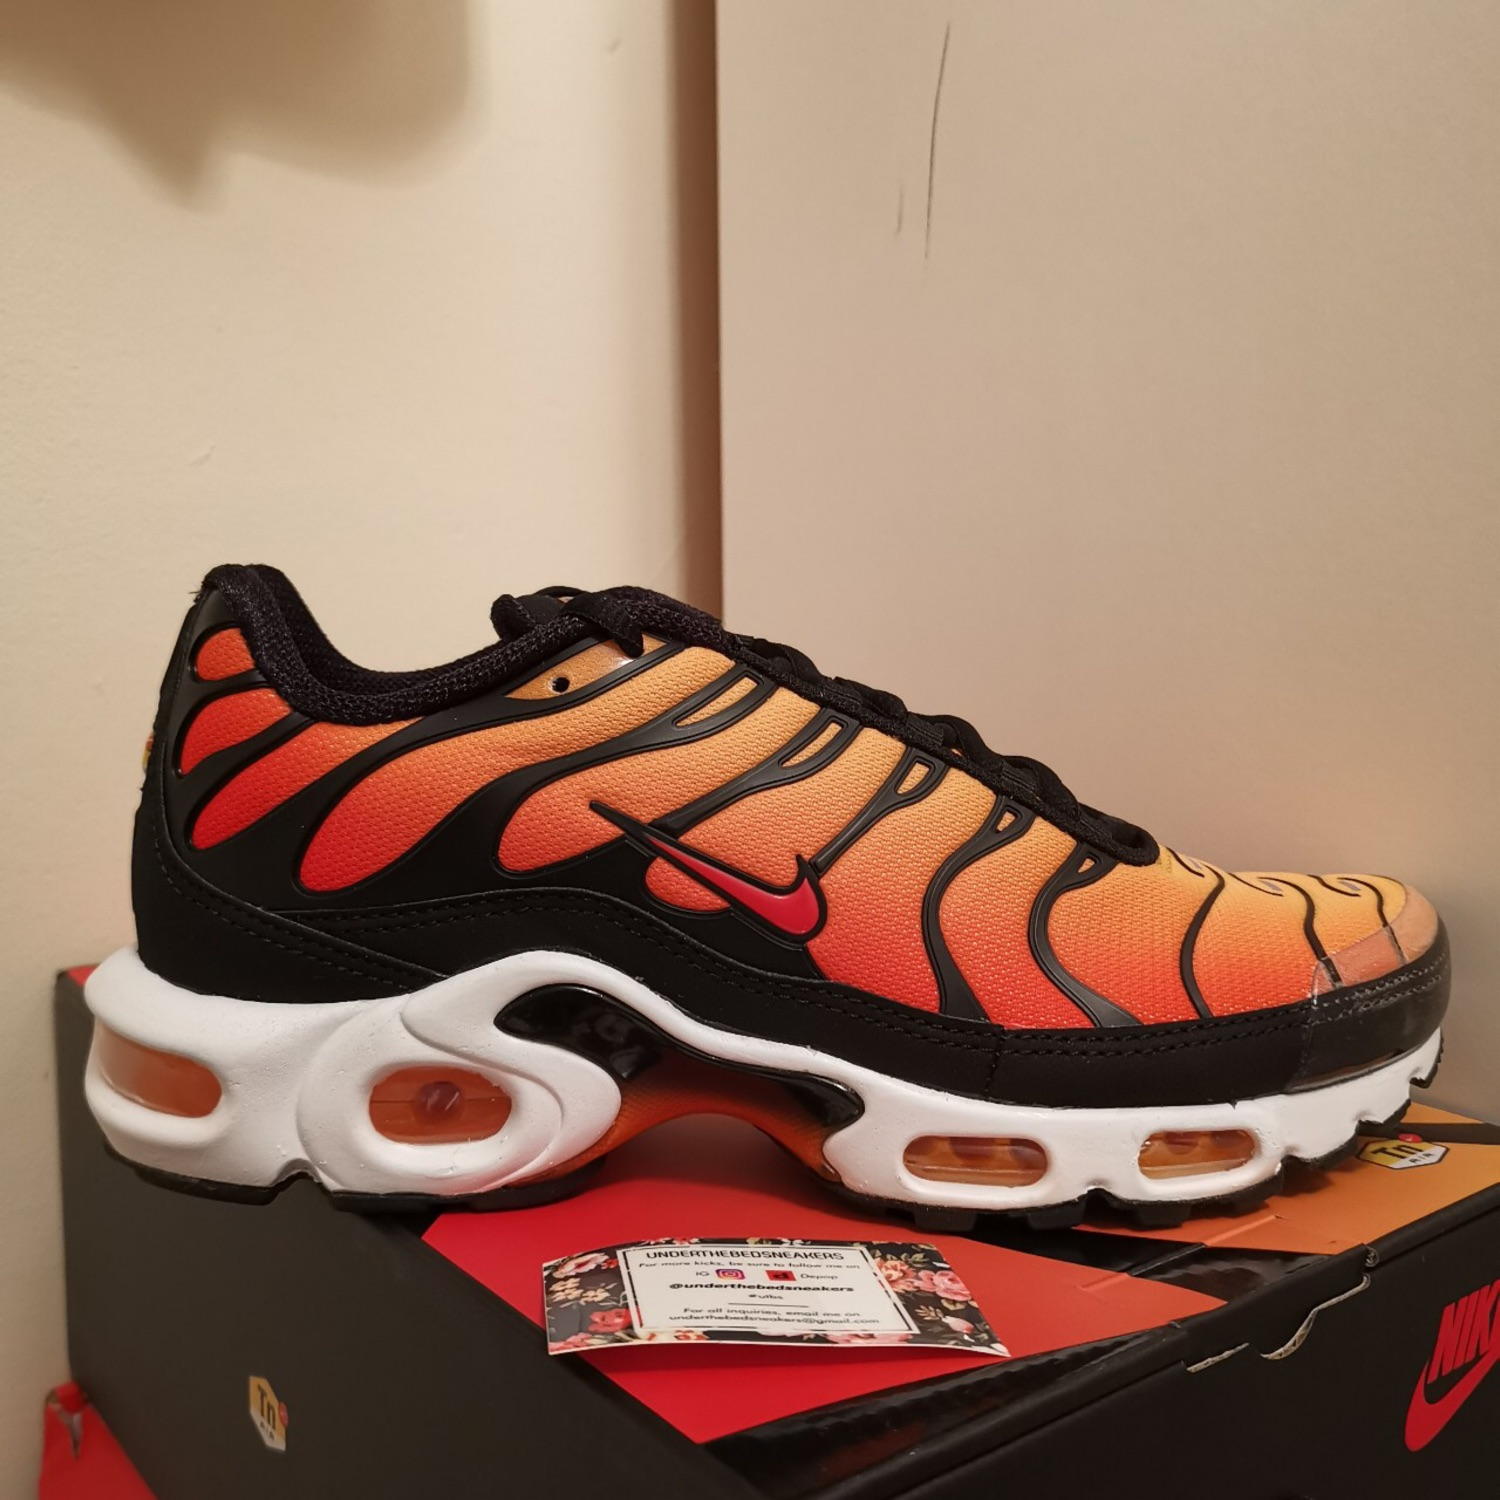 Nike Air Max Plus Tiger Sunset